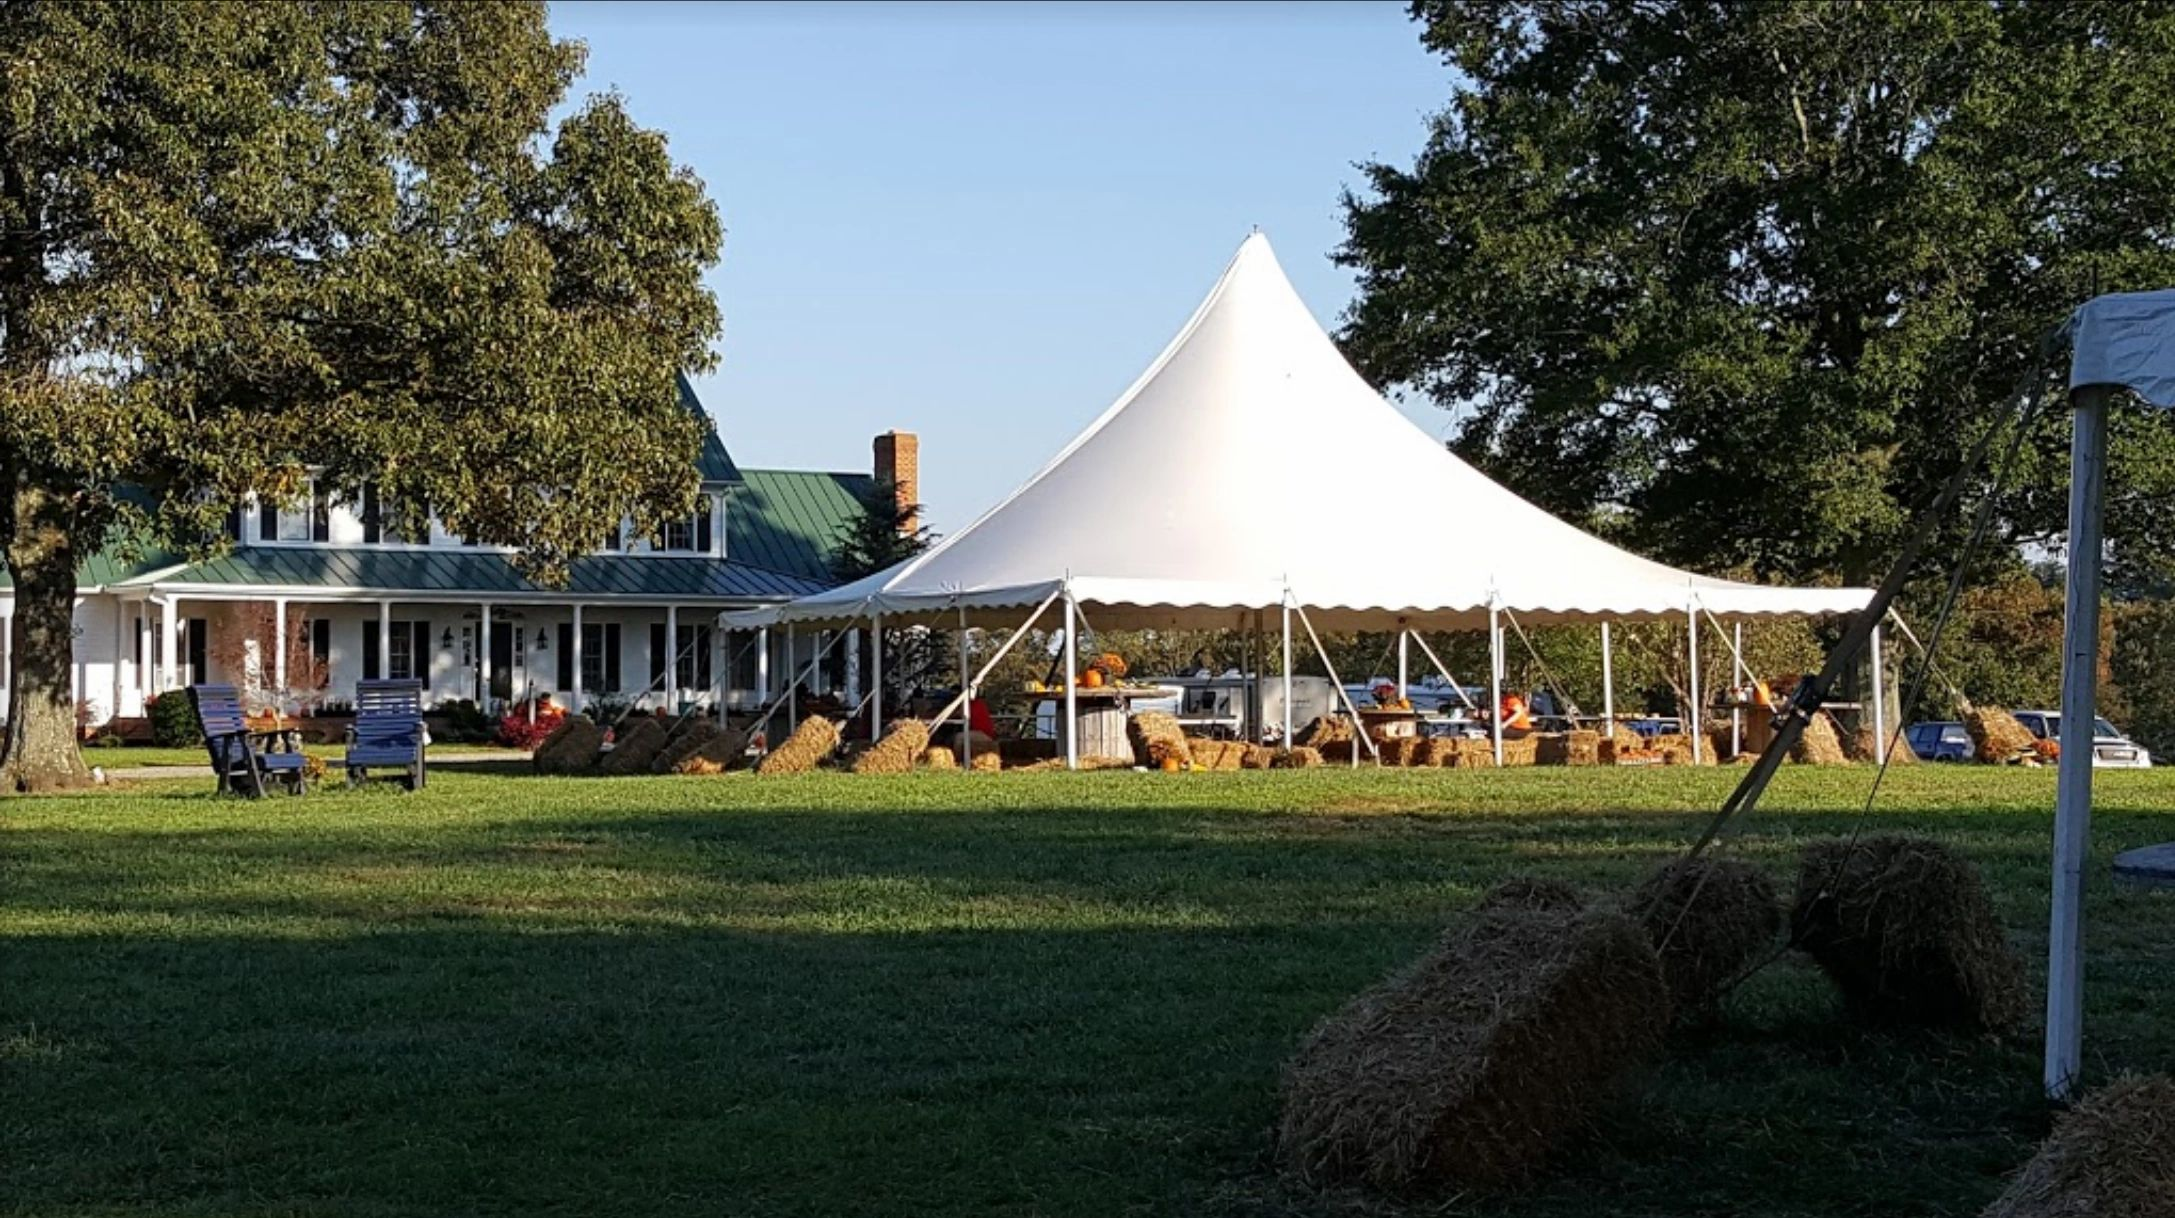 Lloyd Family Farms - Event Venue, Pumpkin Patch, Corporate Events